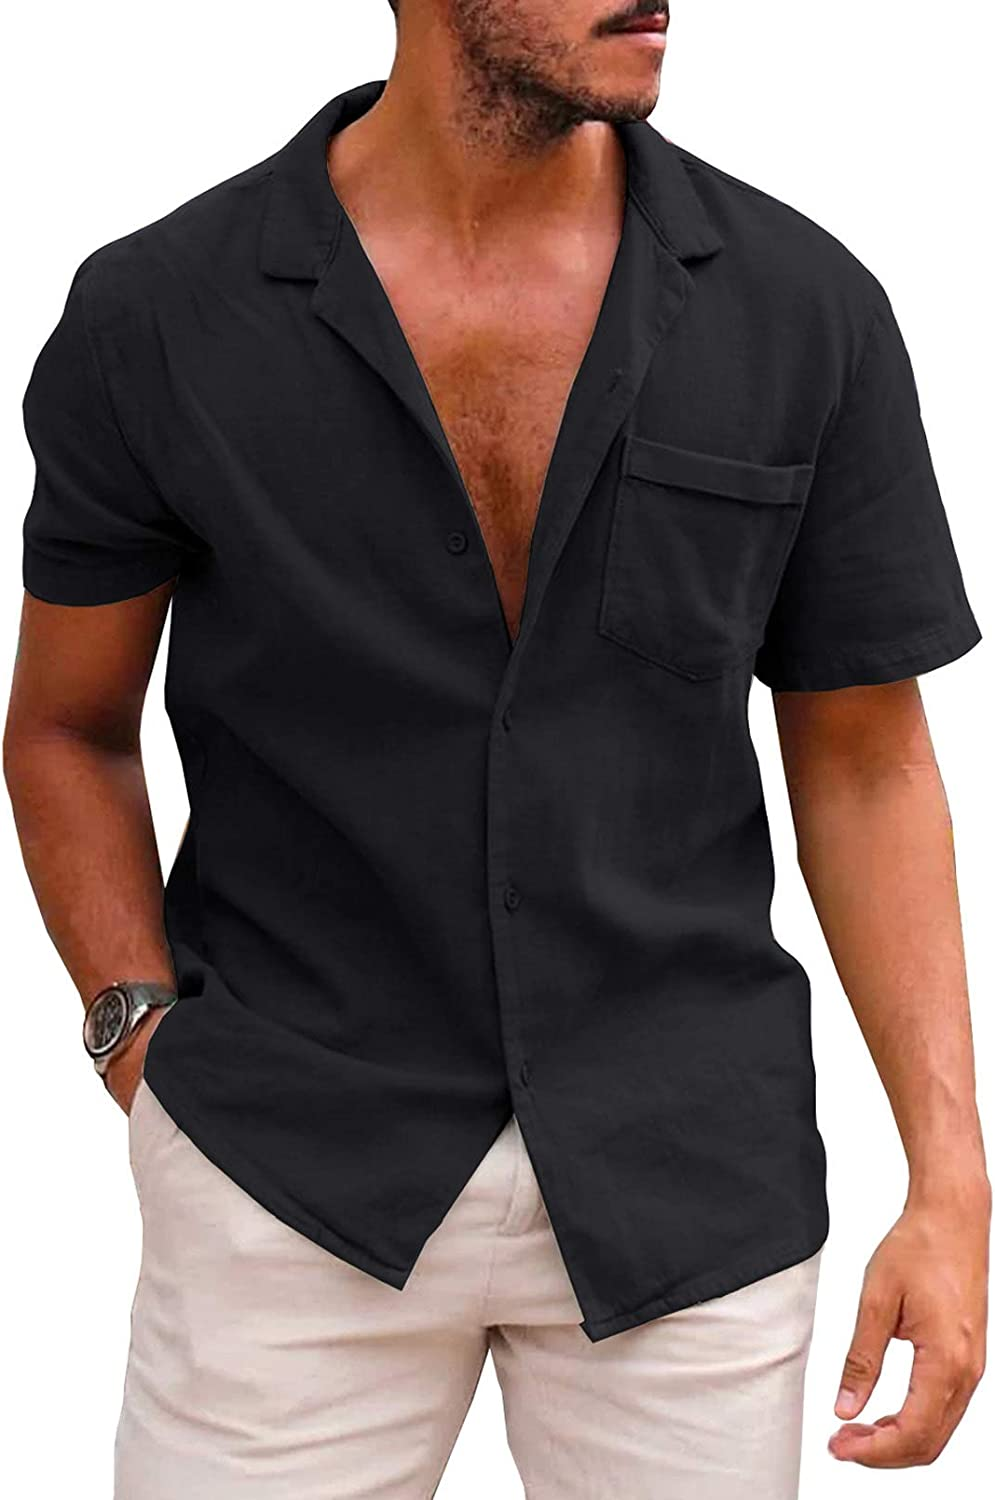 Renaowin Mens Casual Button Down Henley T-Shirts Short Sleeves Solid Classic Summer Blouse Tops